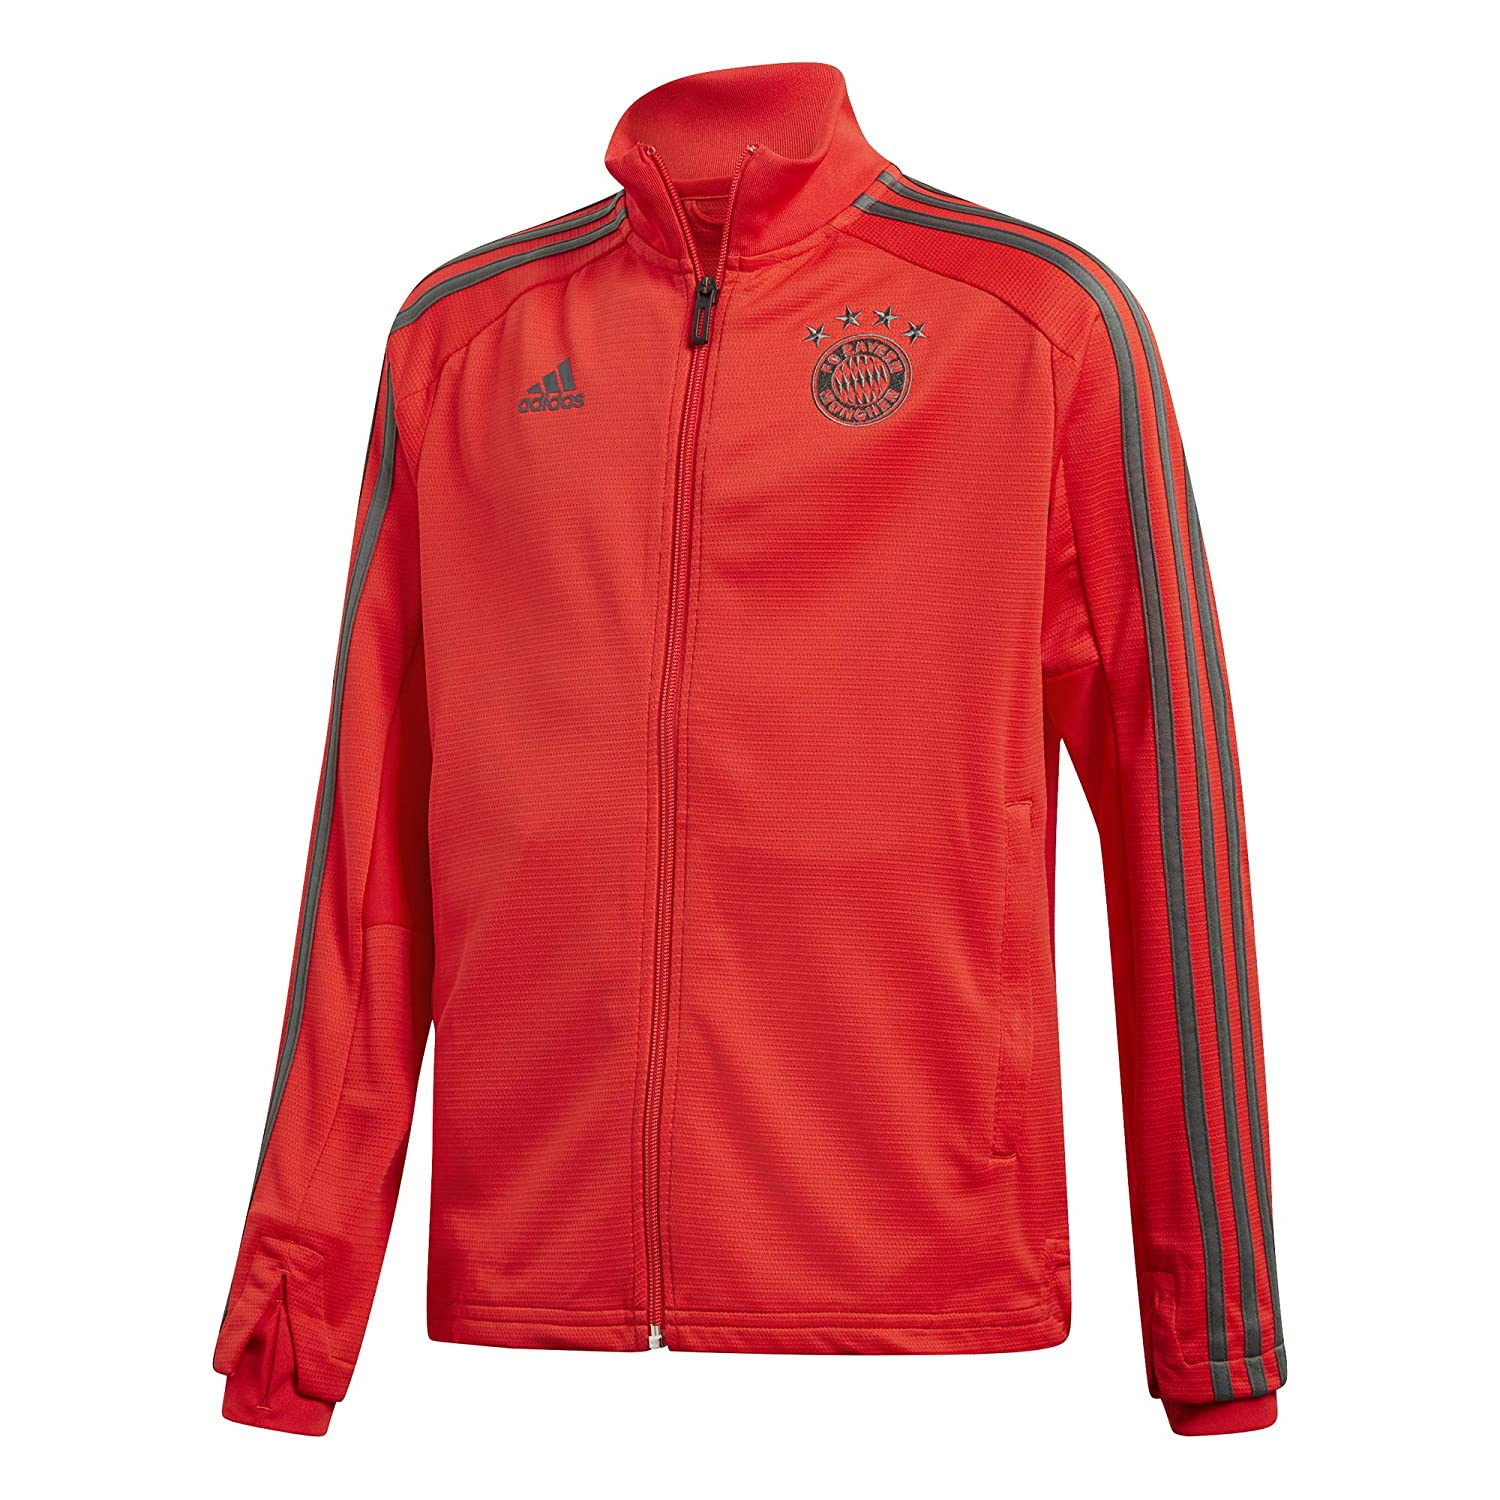 adidas 2018 2019 Bayern Munich Training Track Jacket (Red) Kids